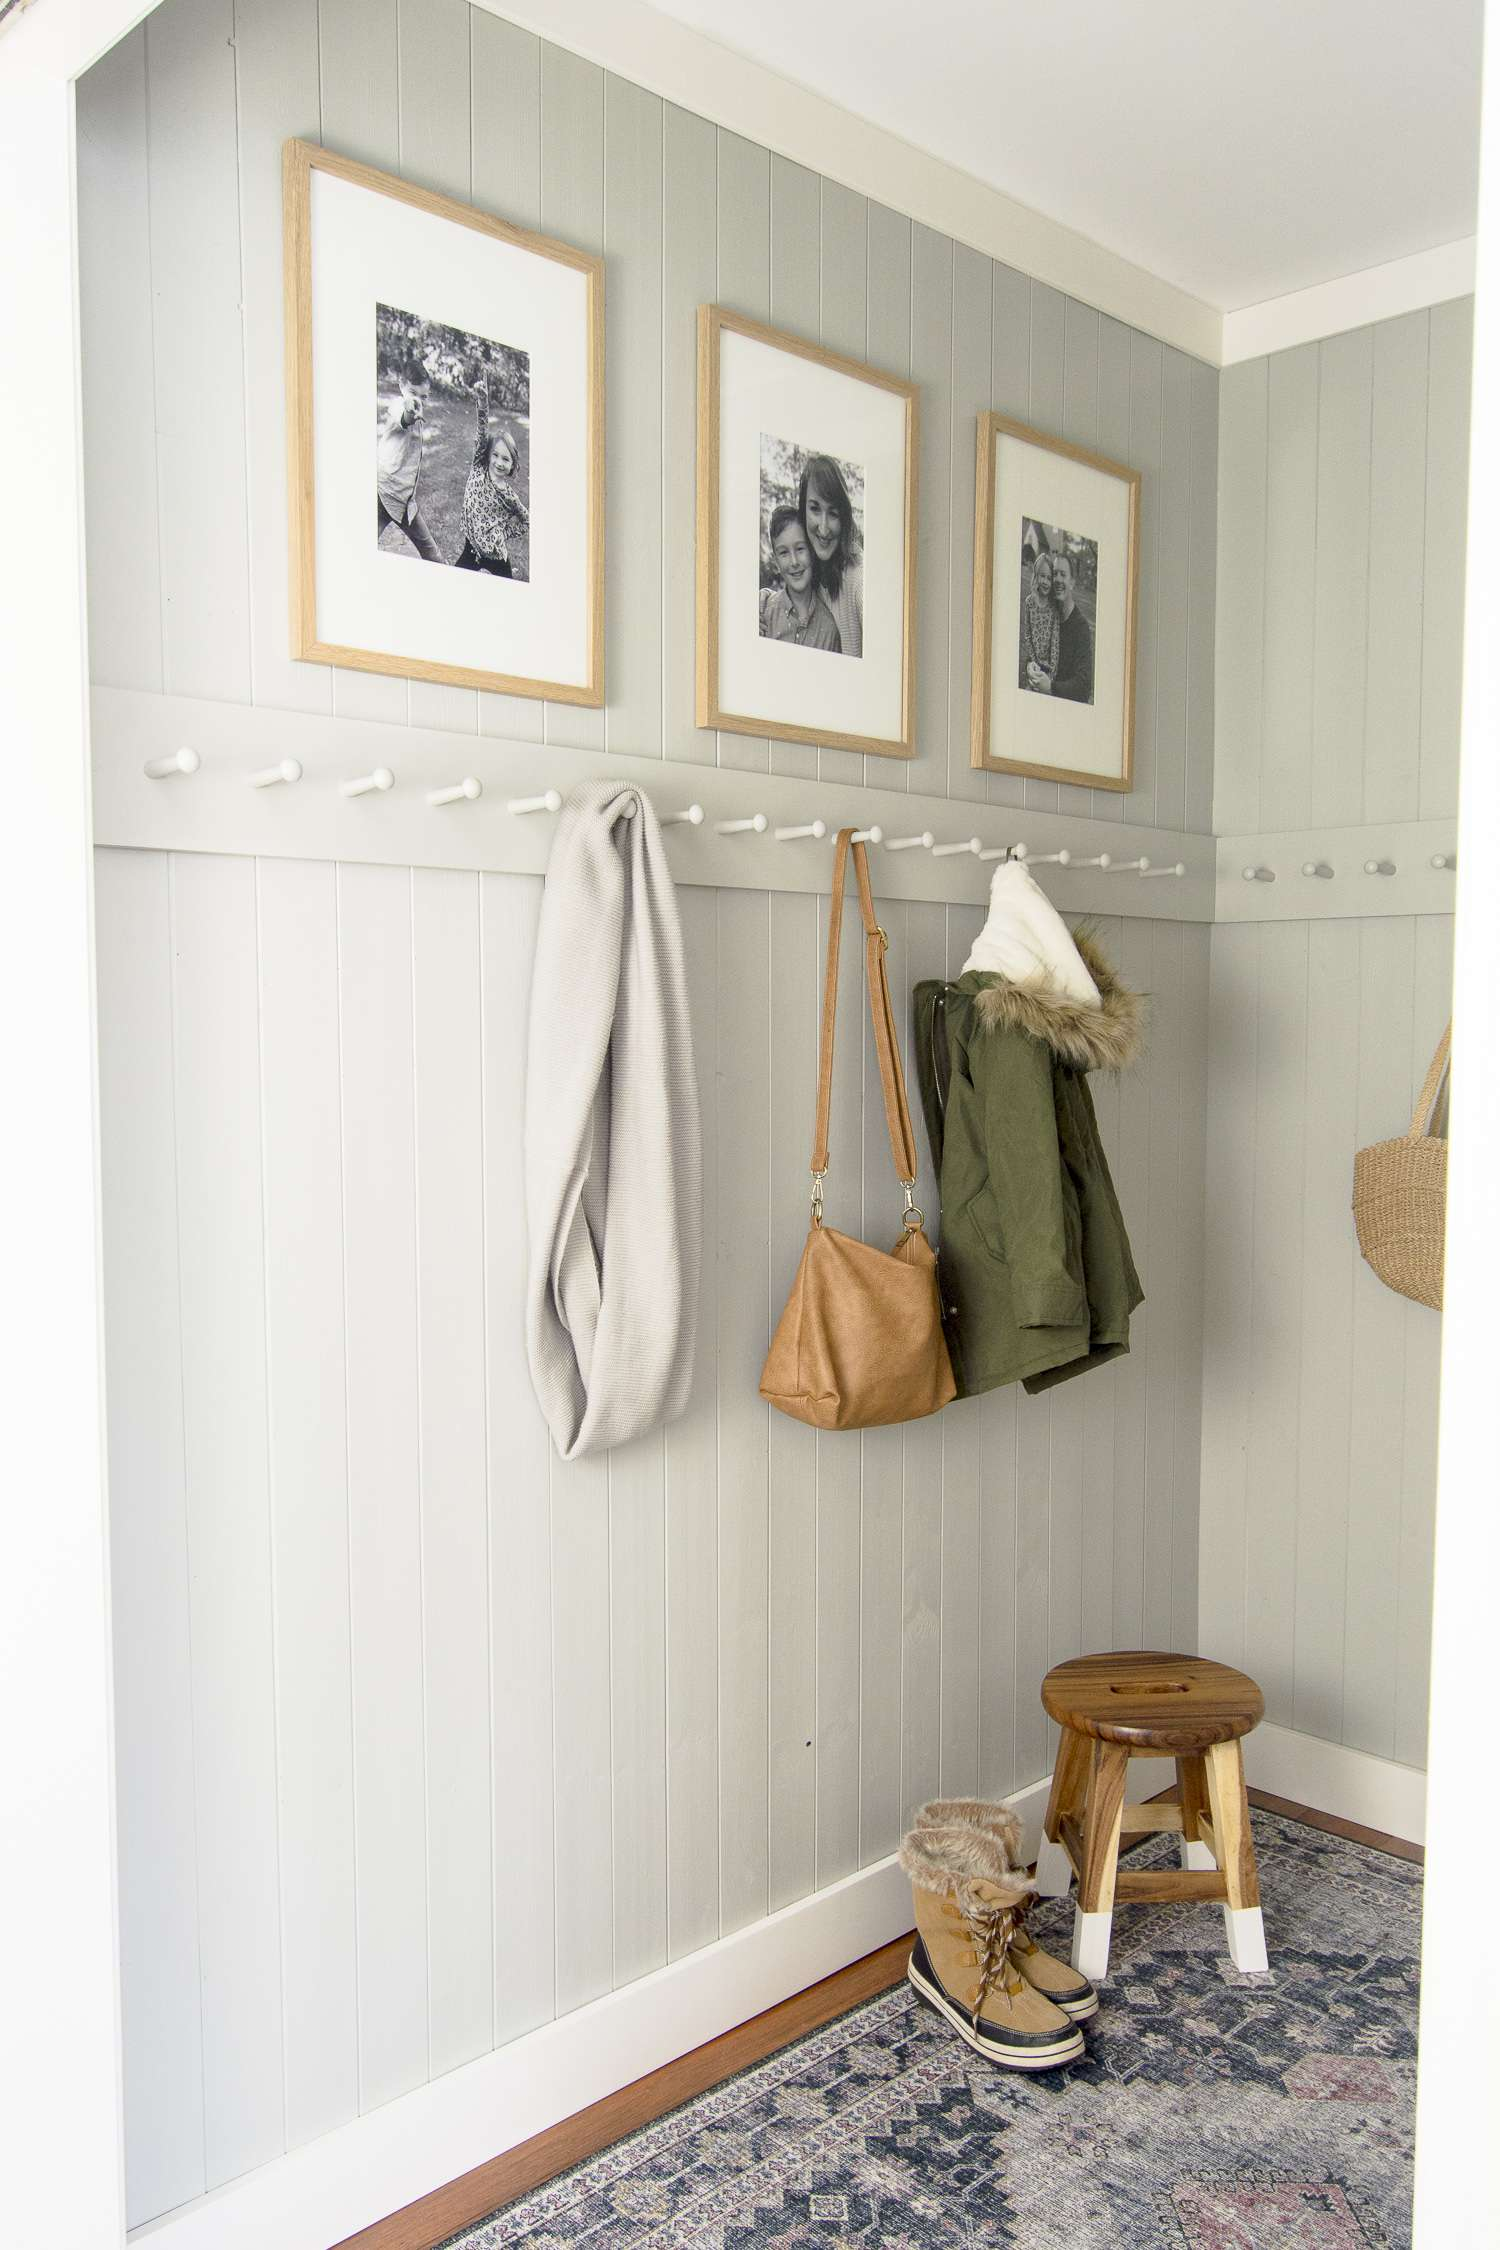 Peg rack in a small mudroom.